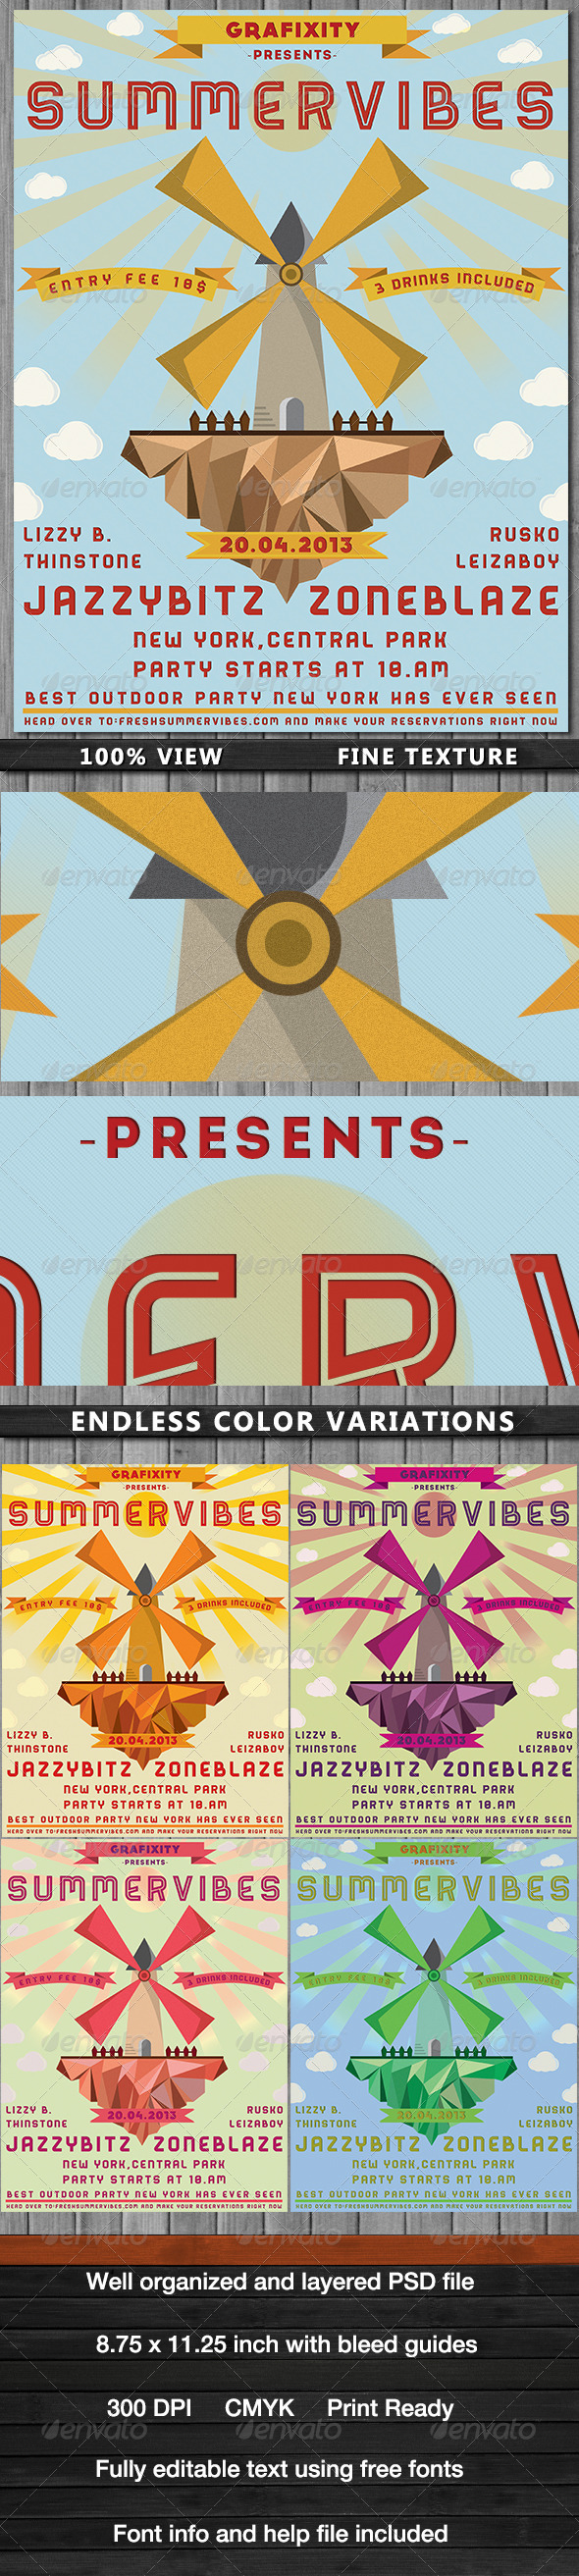 GraphicRiver SummerVibes-Retro Summer Poster Flyer 4085805